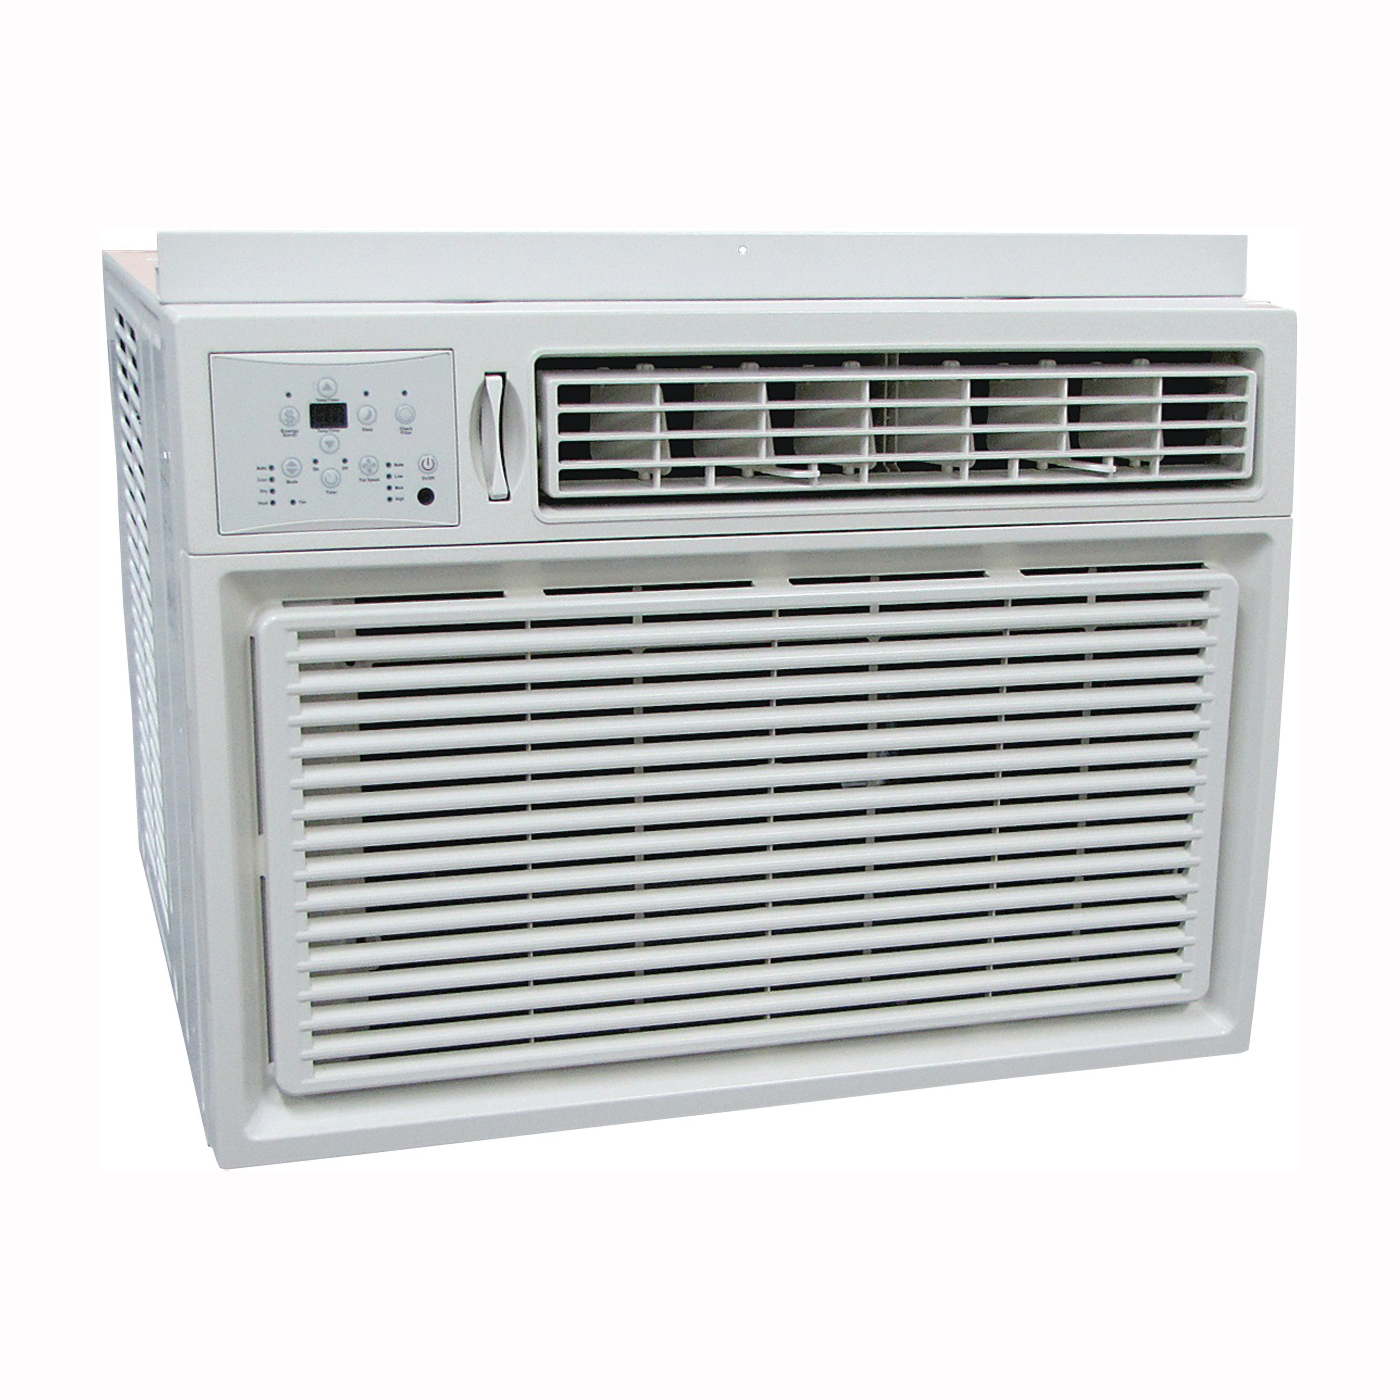 Picture of Comfort-Aire RADS-151P Room Air Conditioner, 115 V, 60 Hz, 15,100 Btu/hr Cooling, 12 EER, 56/54/53 dB